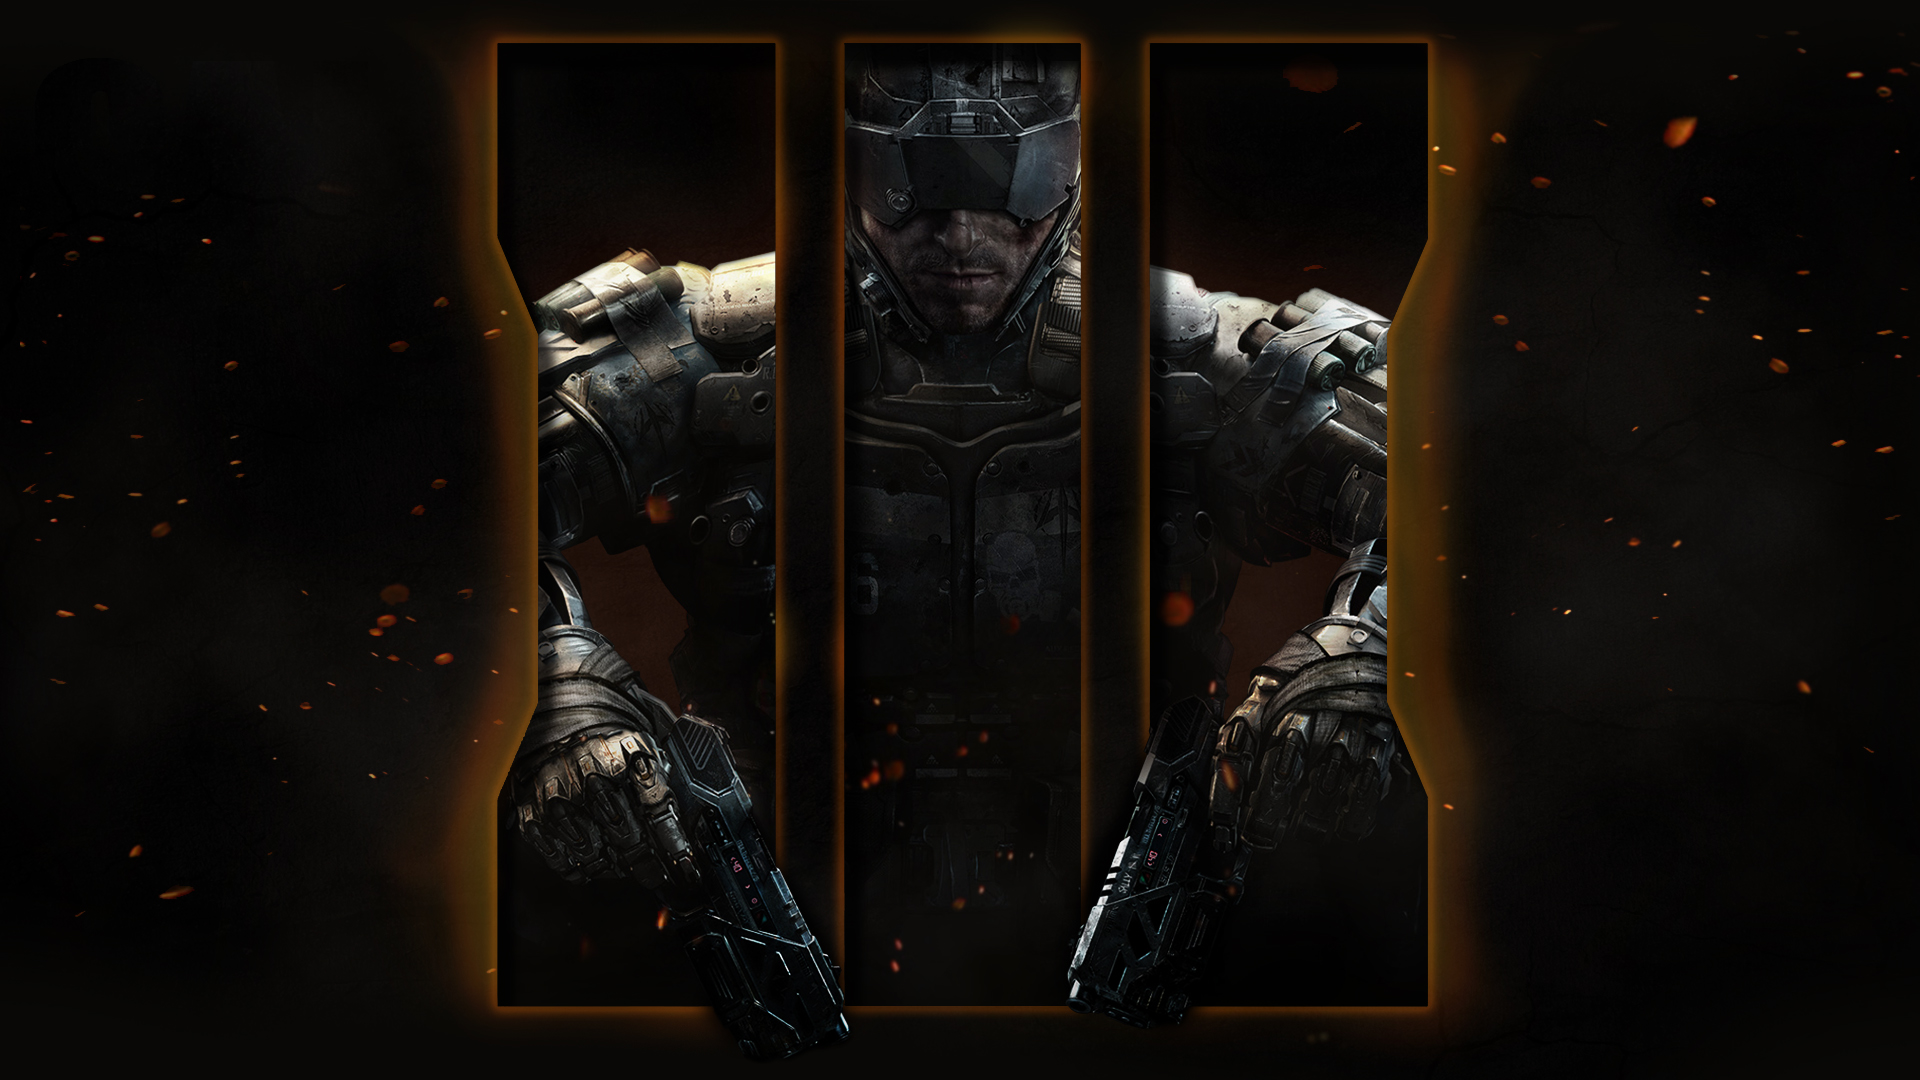 call of duty black ops iii wallpapers pictures images